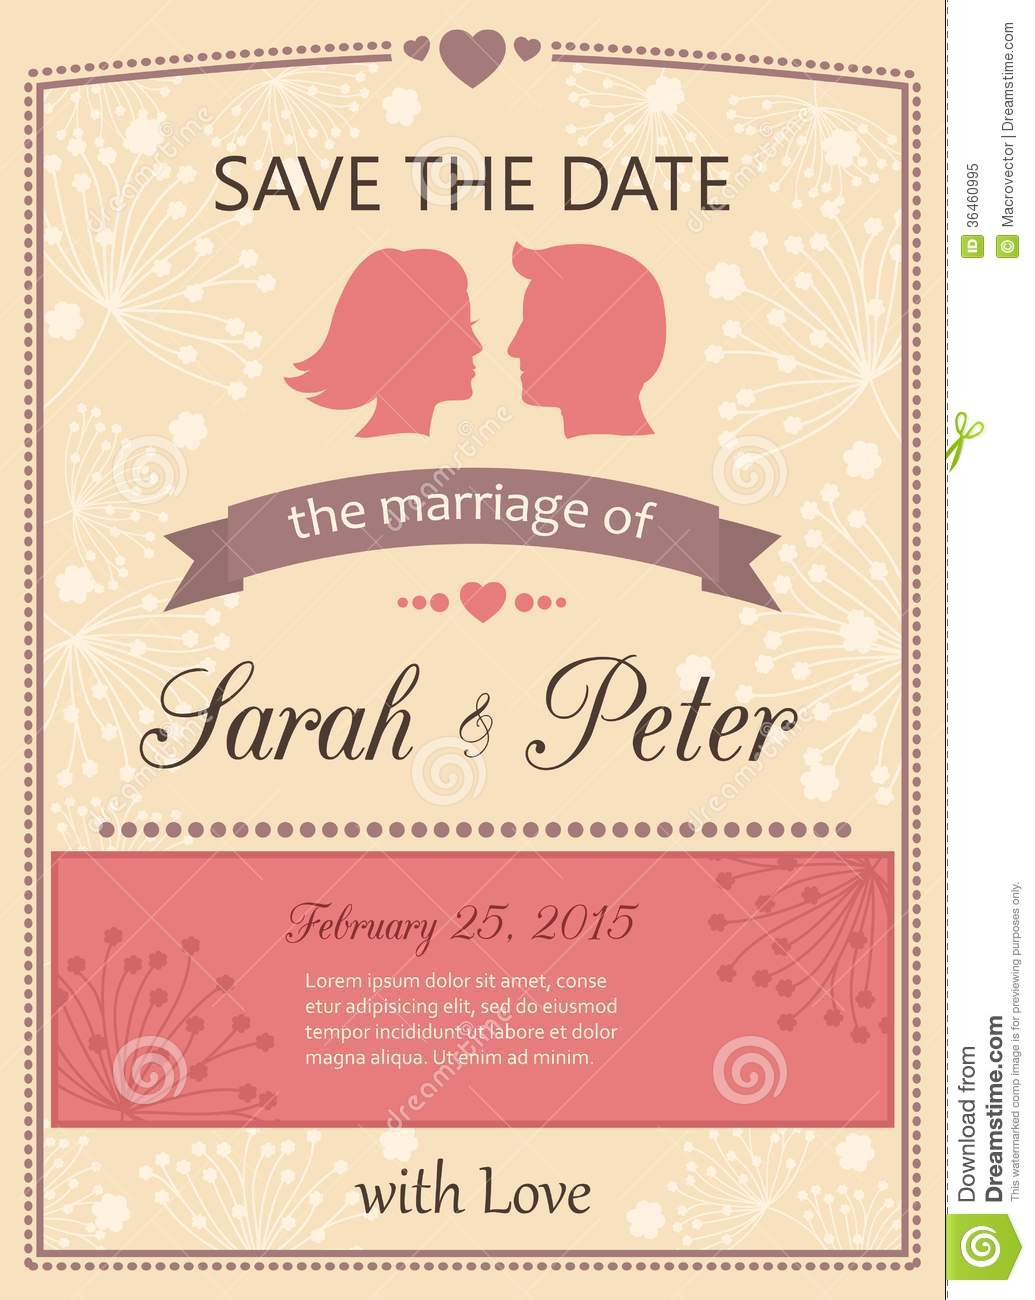 Save the date vs wedding invitations Wedding celebration blog – Wedding Save the Date Invites